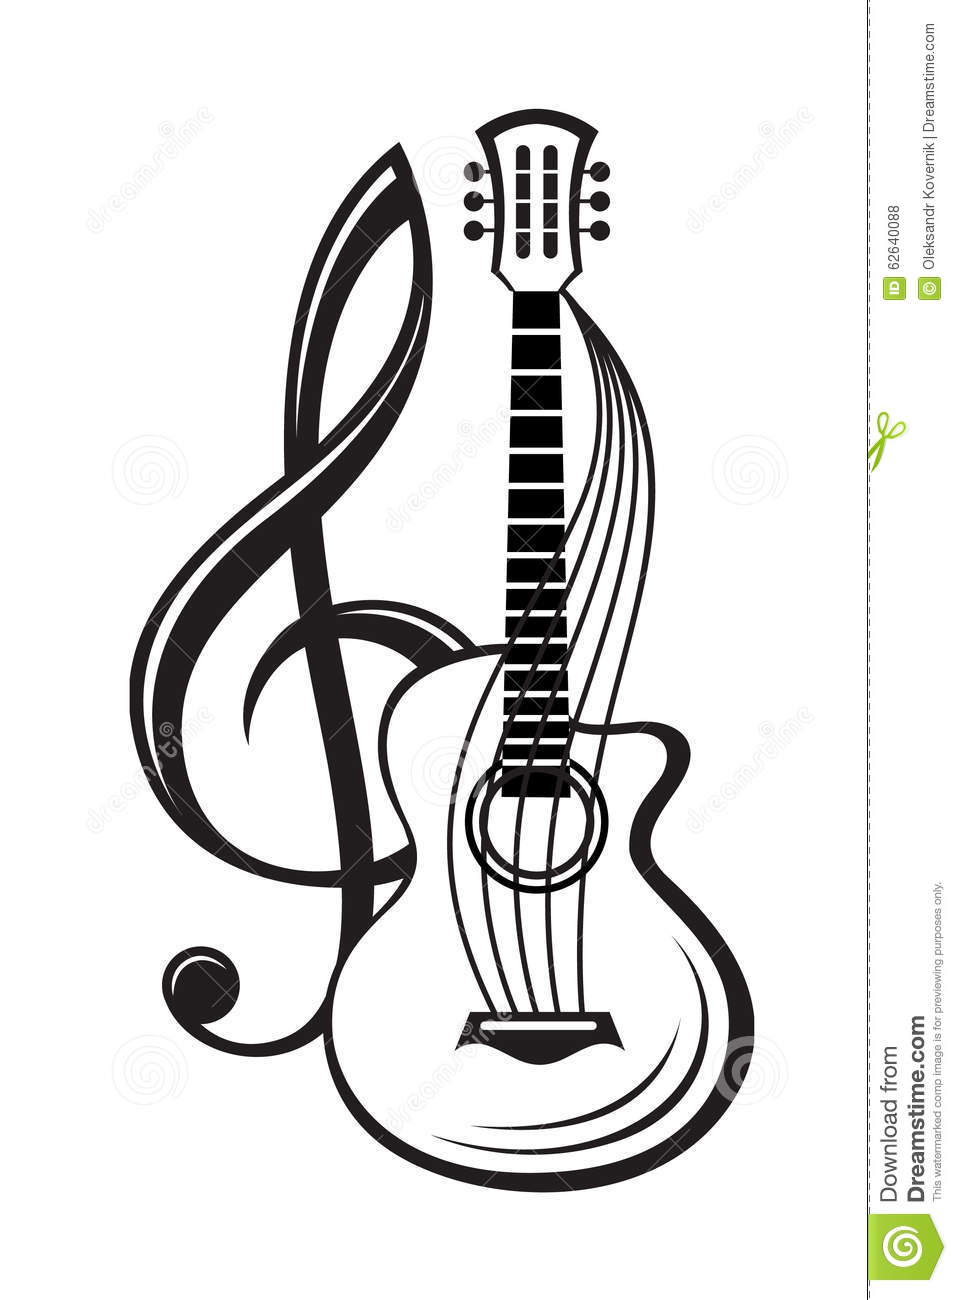 Treble Clef And Guitar Stock Vector - Image: 62640088